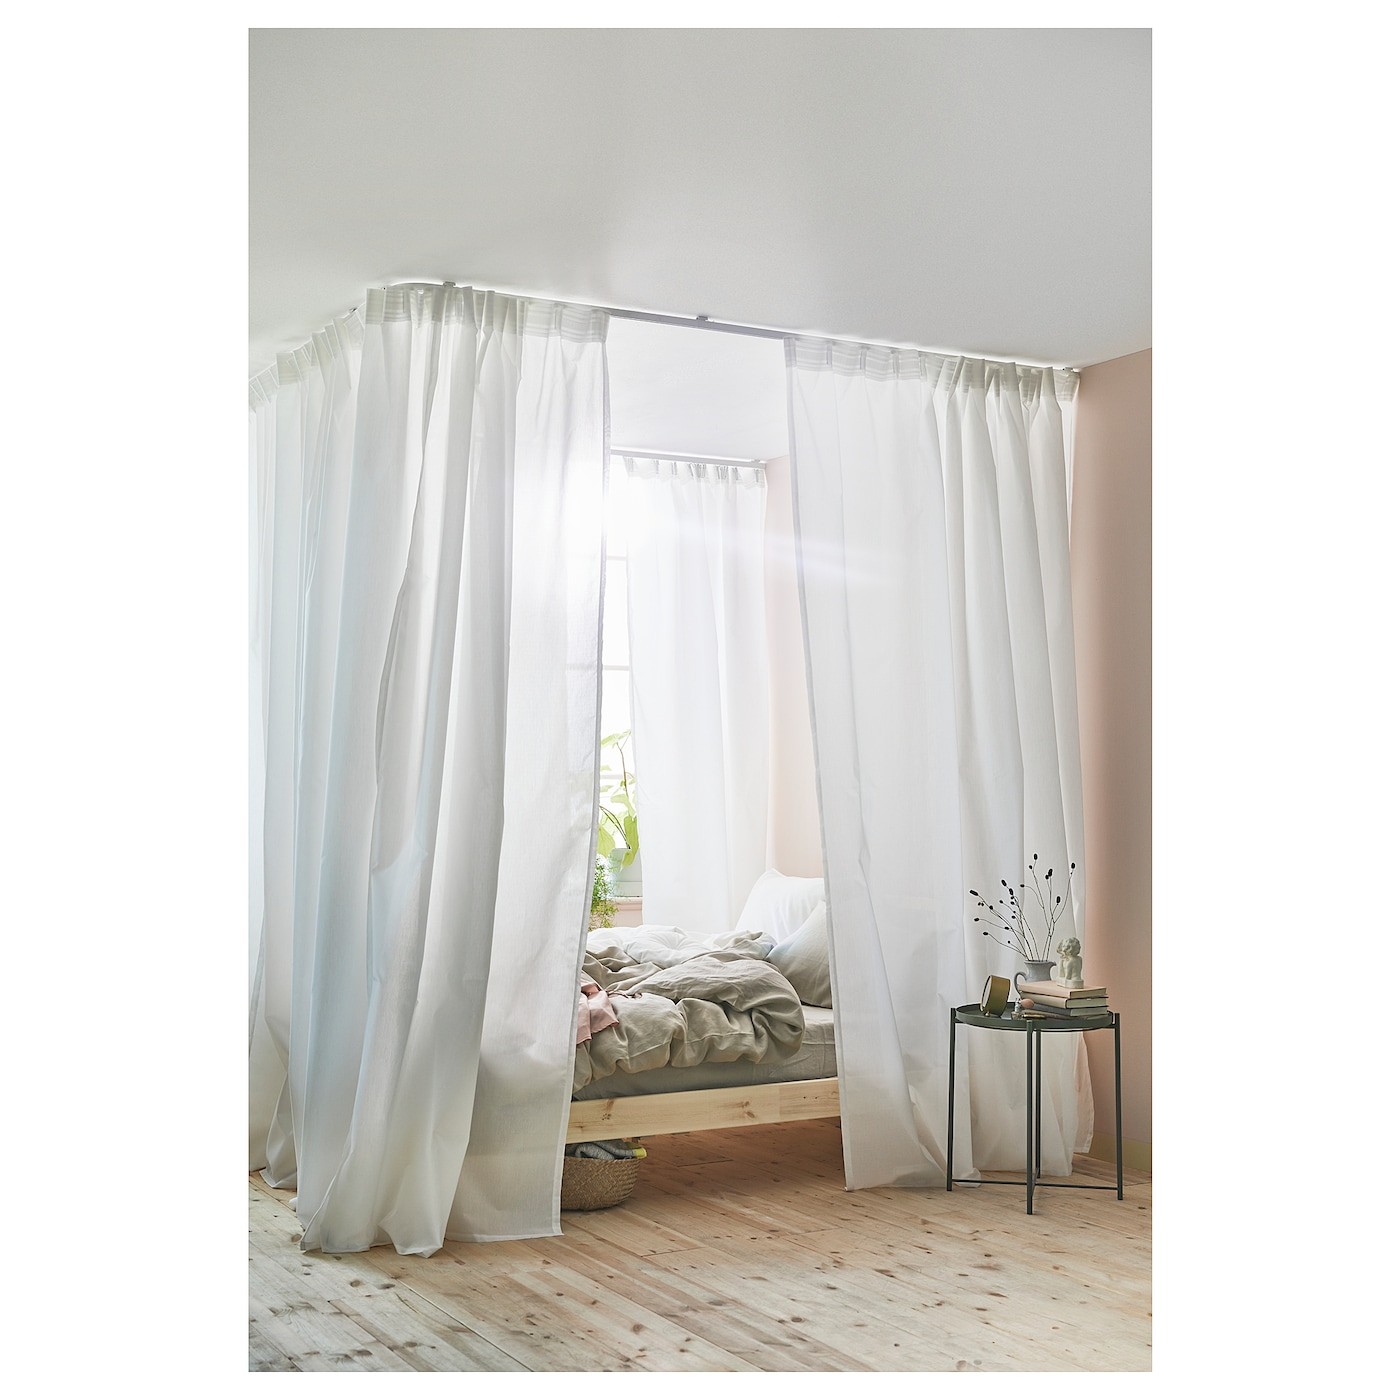 IKEA VIDGA Room Divider For Corner The Rail Can Be Cut To Desired Length With